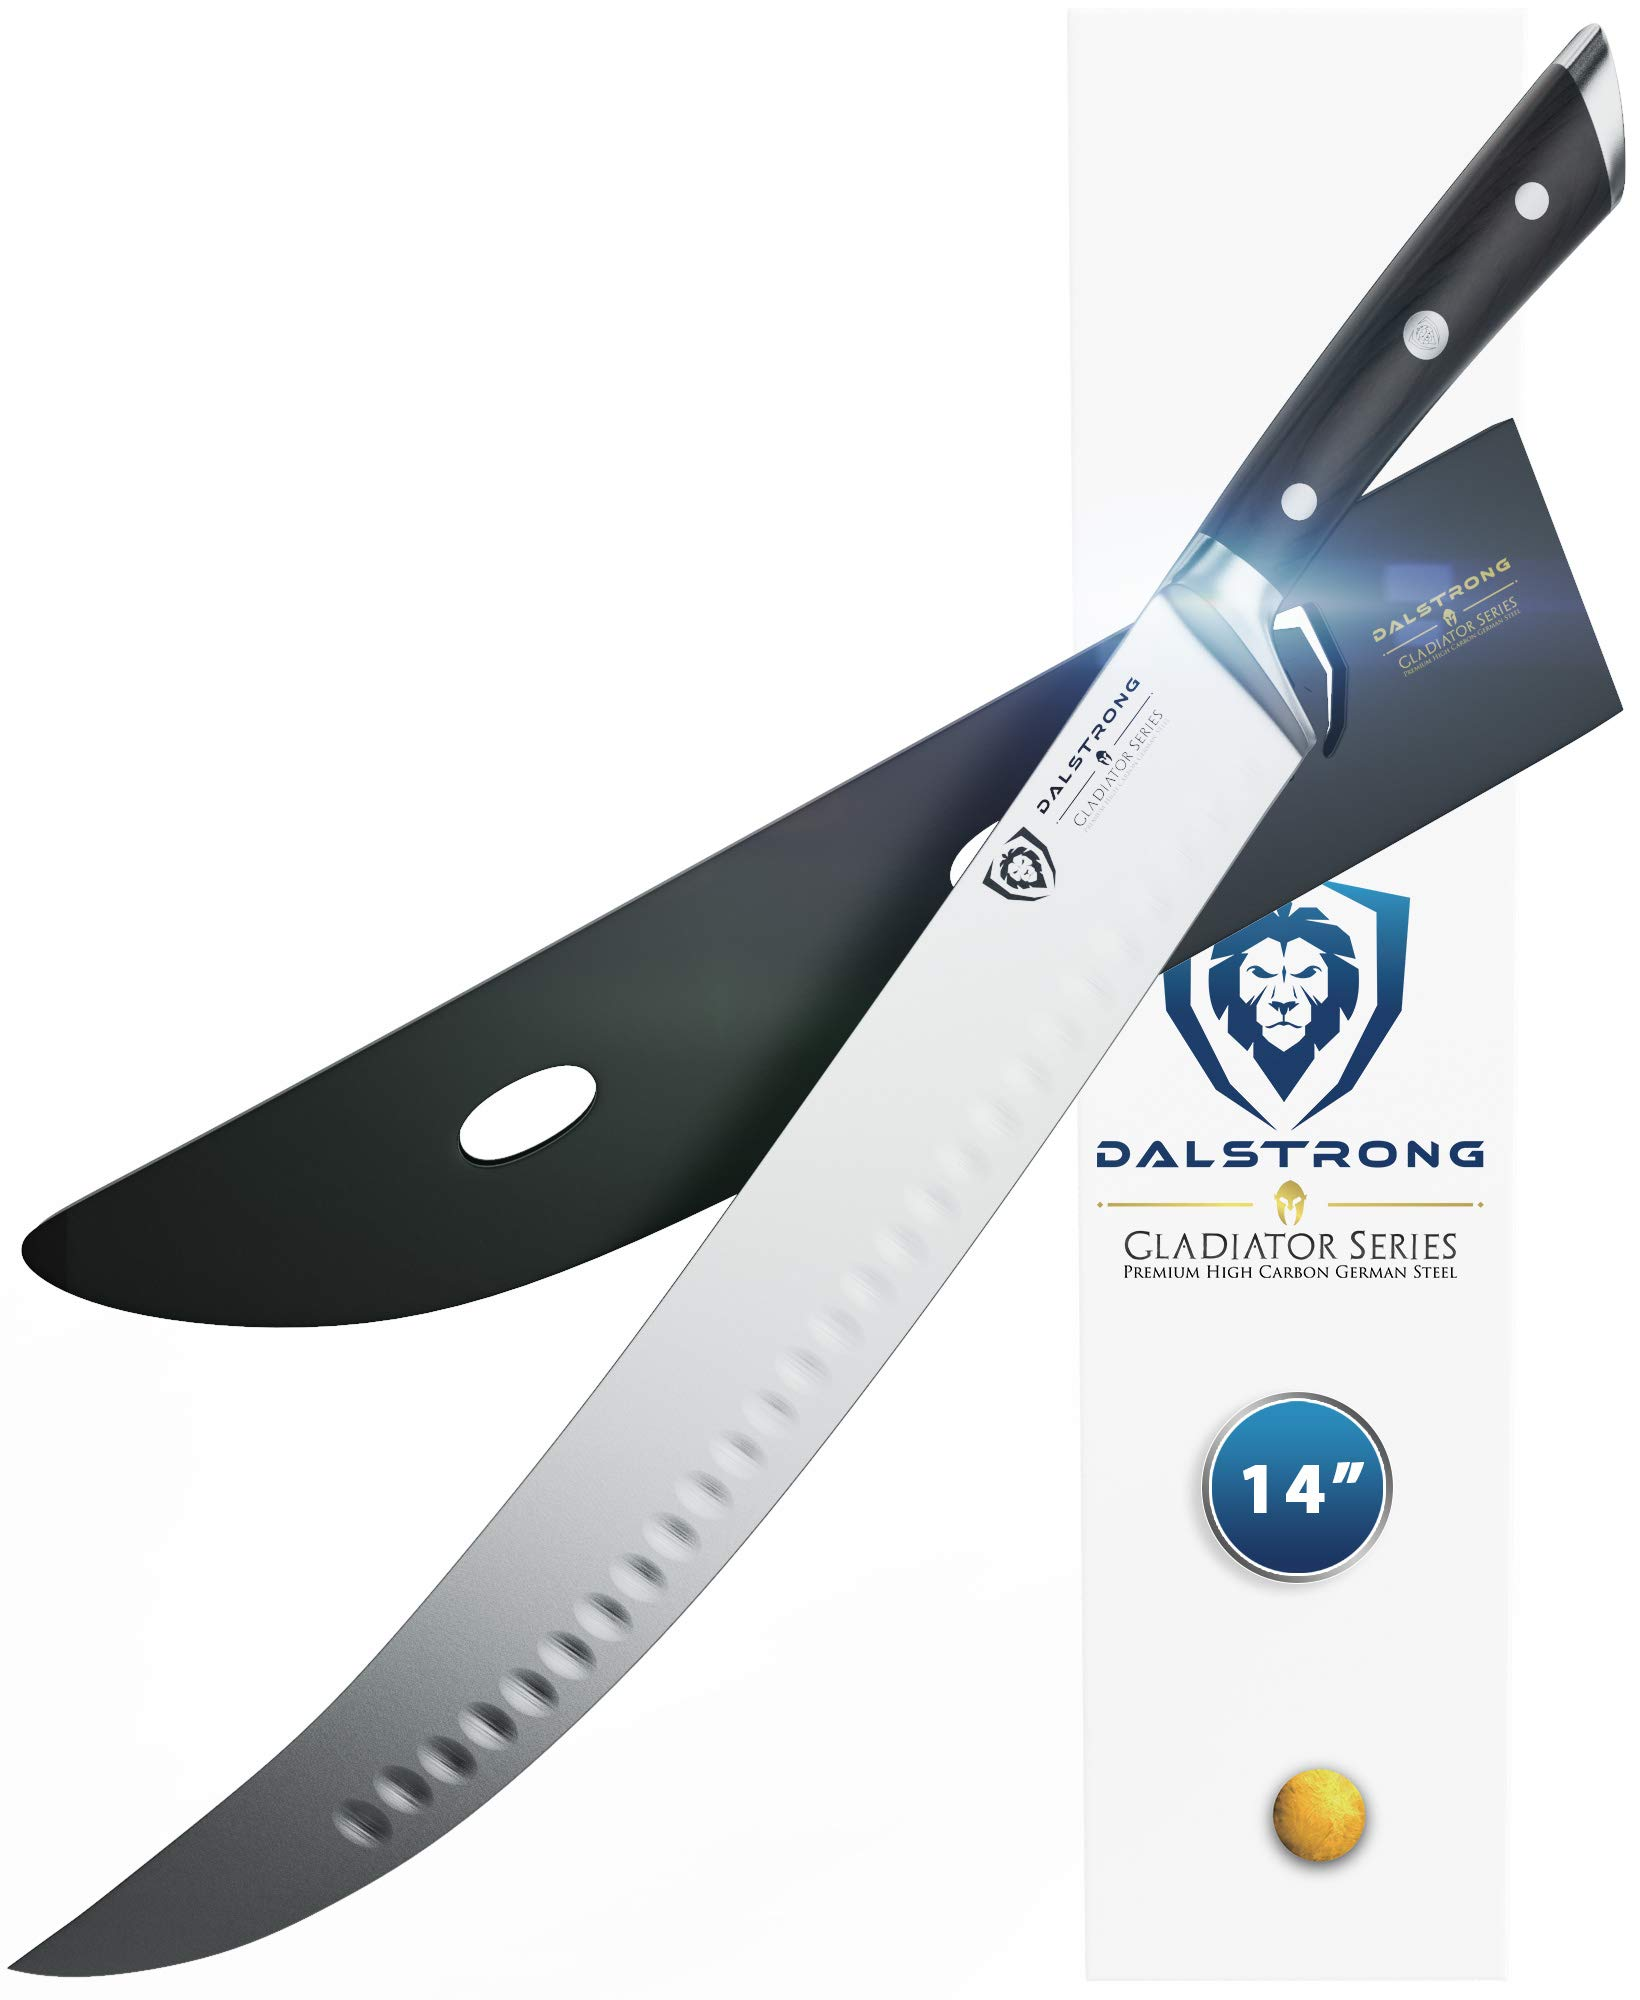 DALSTRONG Butcher's Breaking Cimitar Knife -''The Reaper'' - 14'' - Extra - Long - Gladiator Series - German HC Steel - w/Sheath by Dalstrong